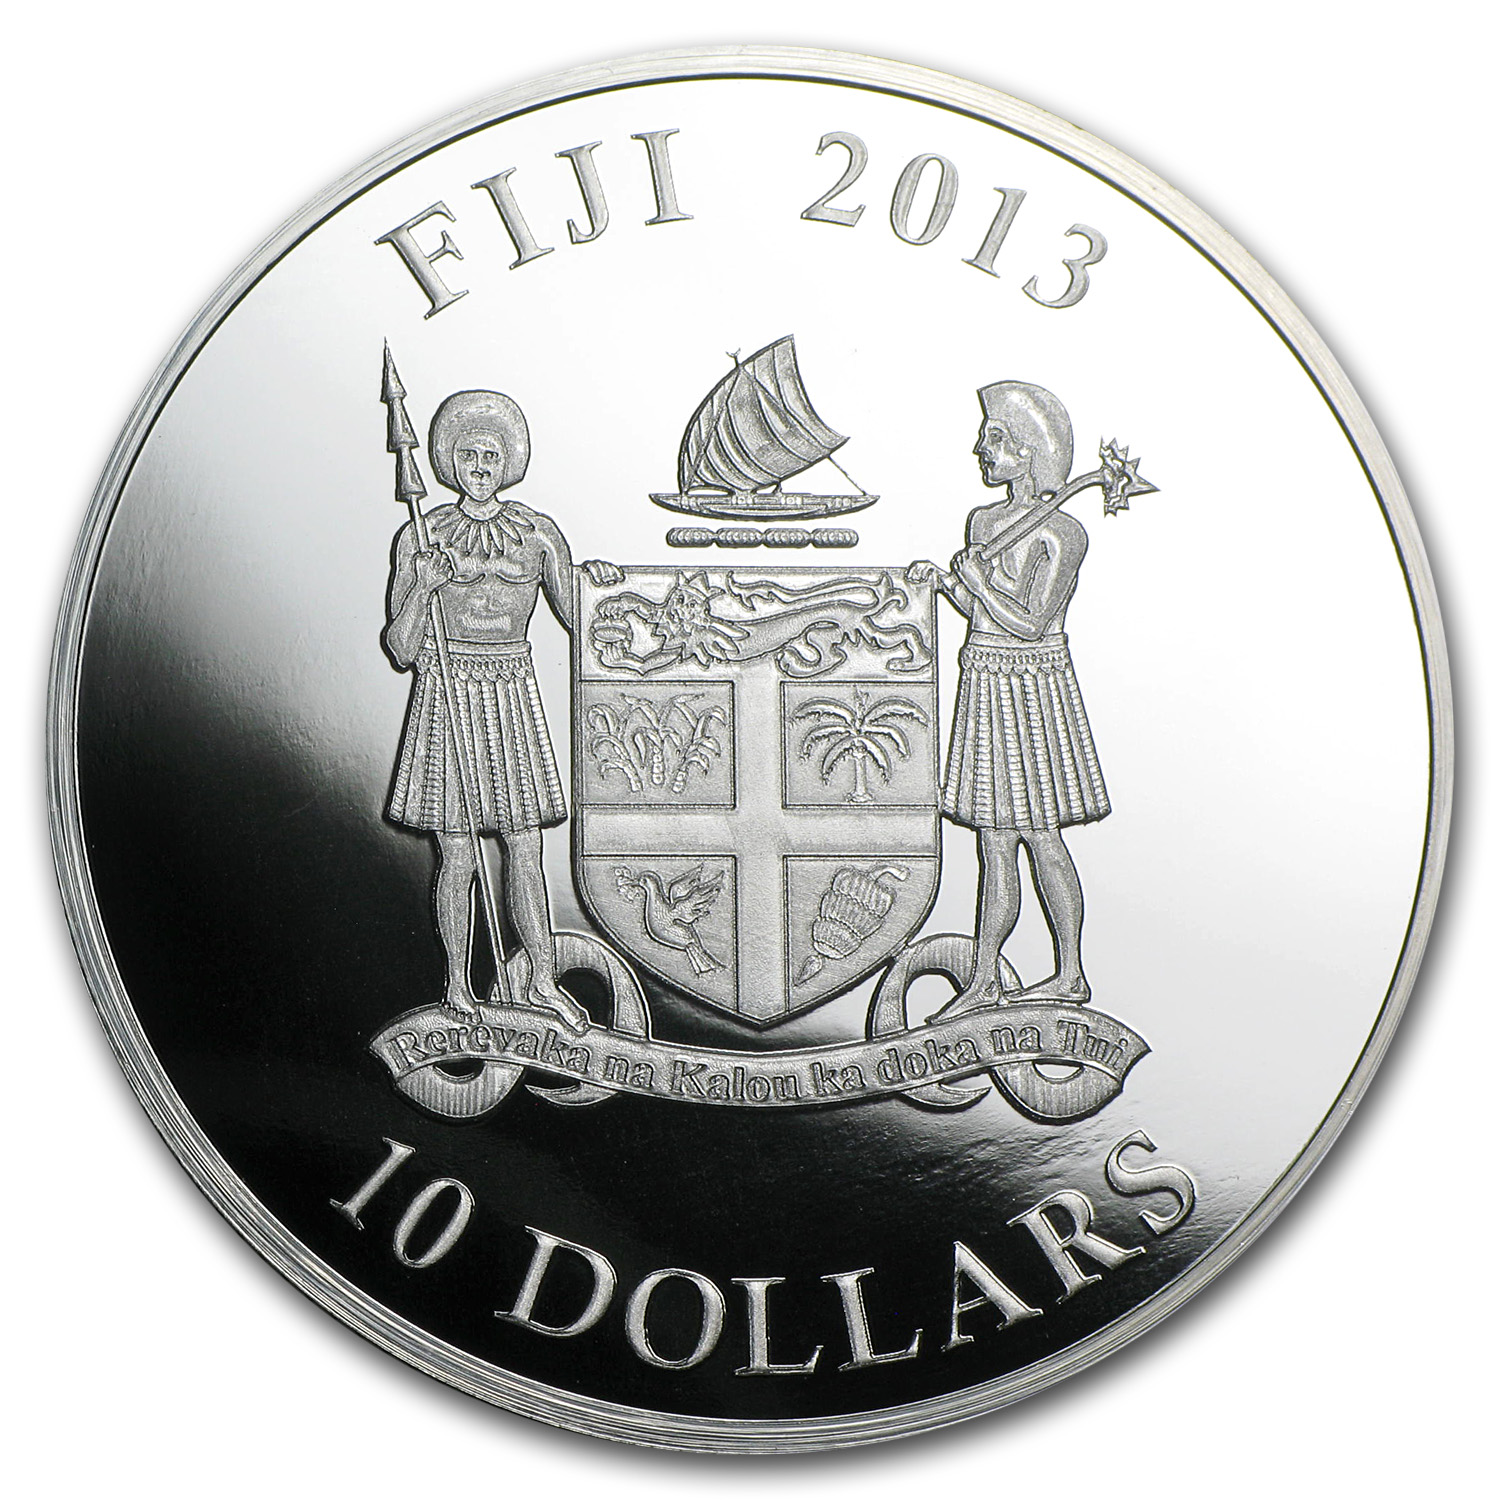 Fiji 2013 Silver $10 Year of the Snake - Gilson Opal Snake